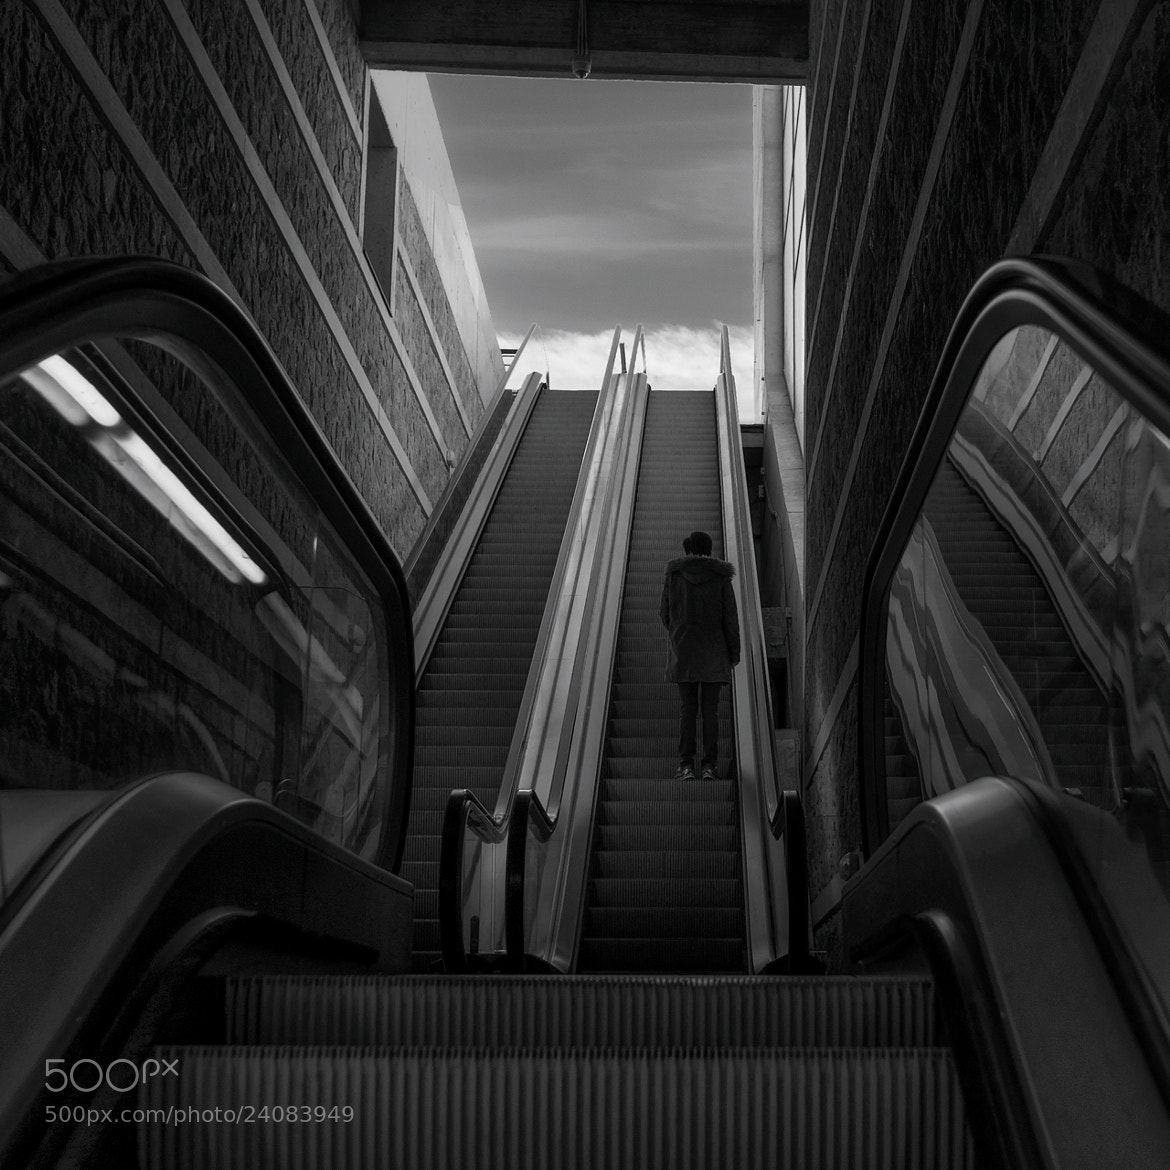 Photograph Escaleras by Fermín Noain on 500px